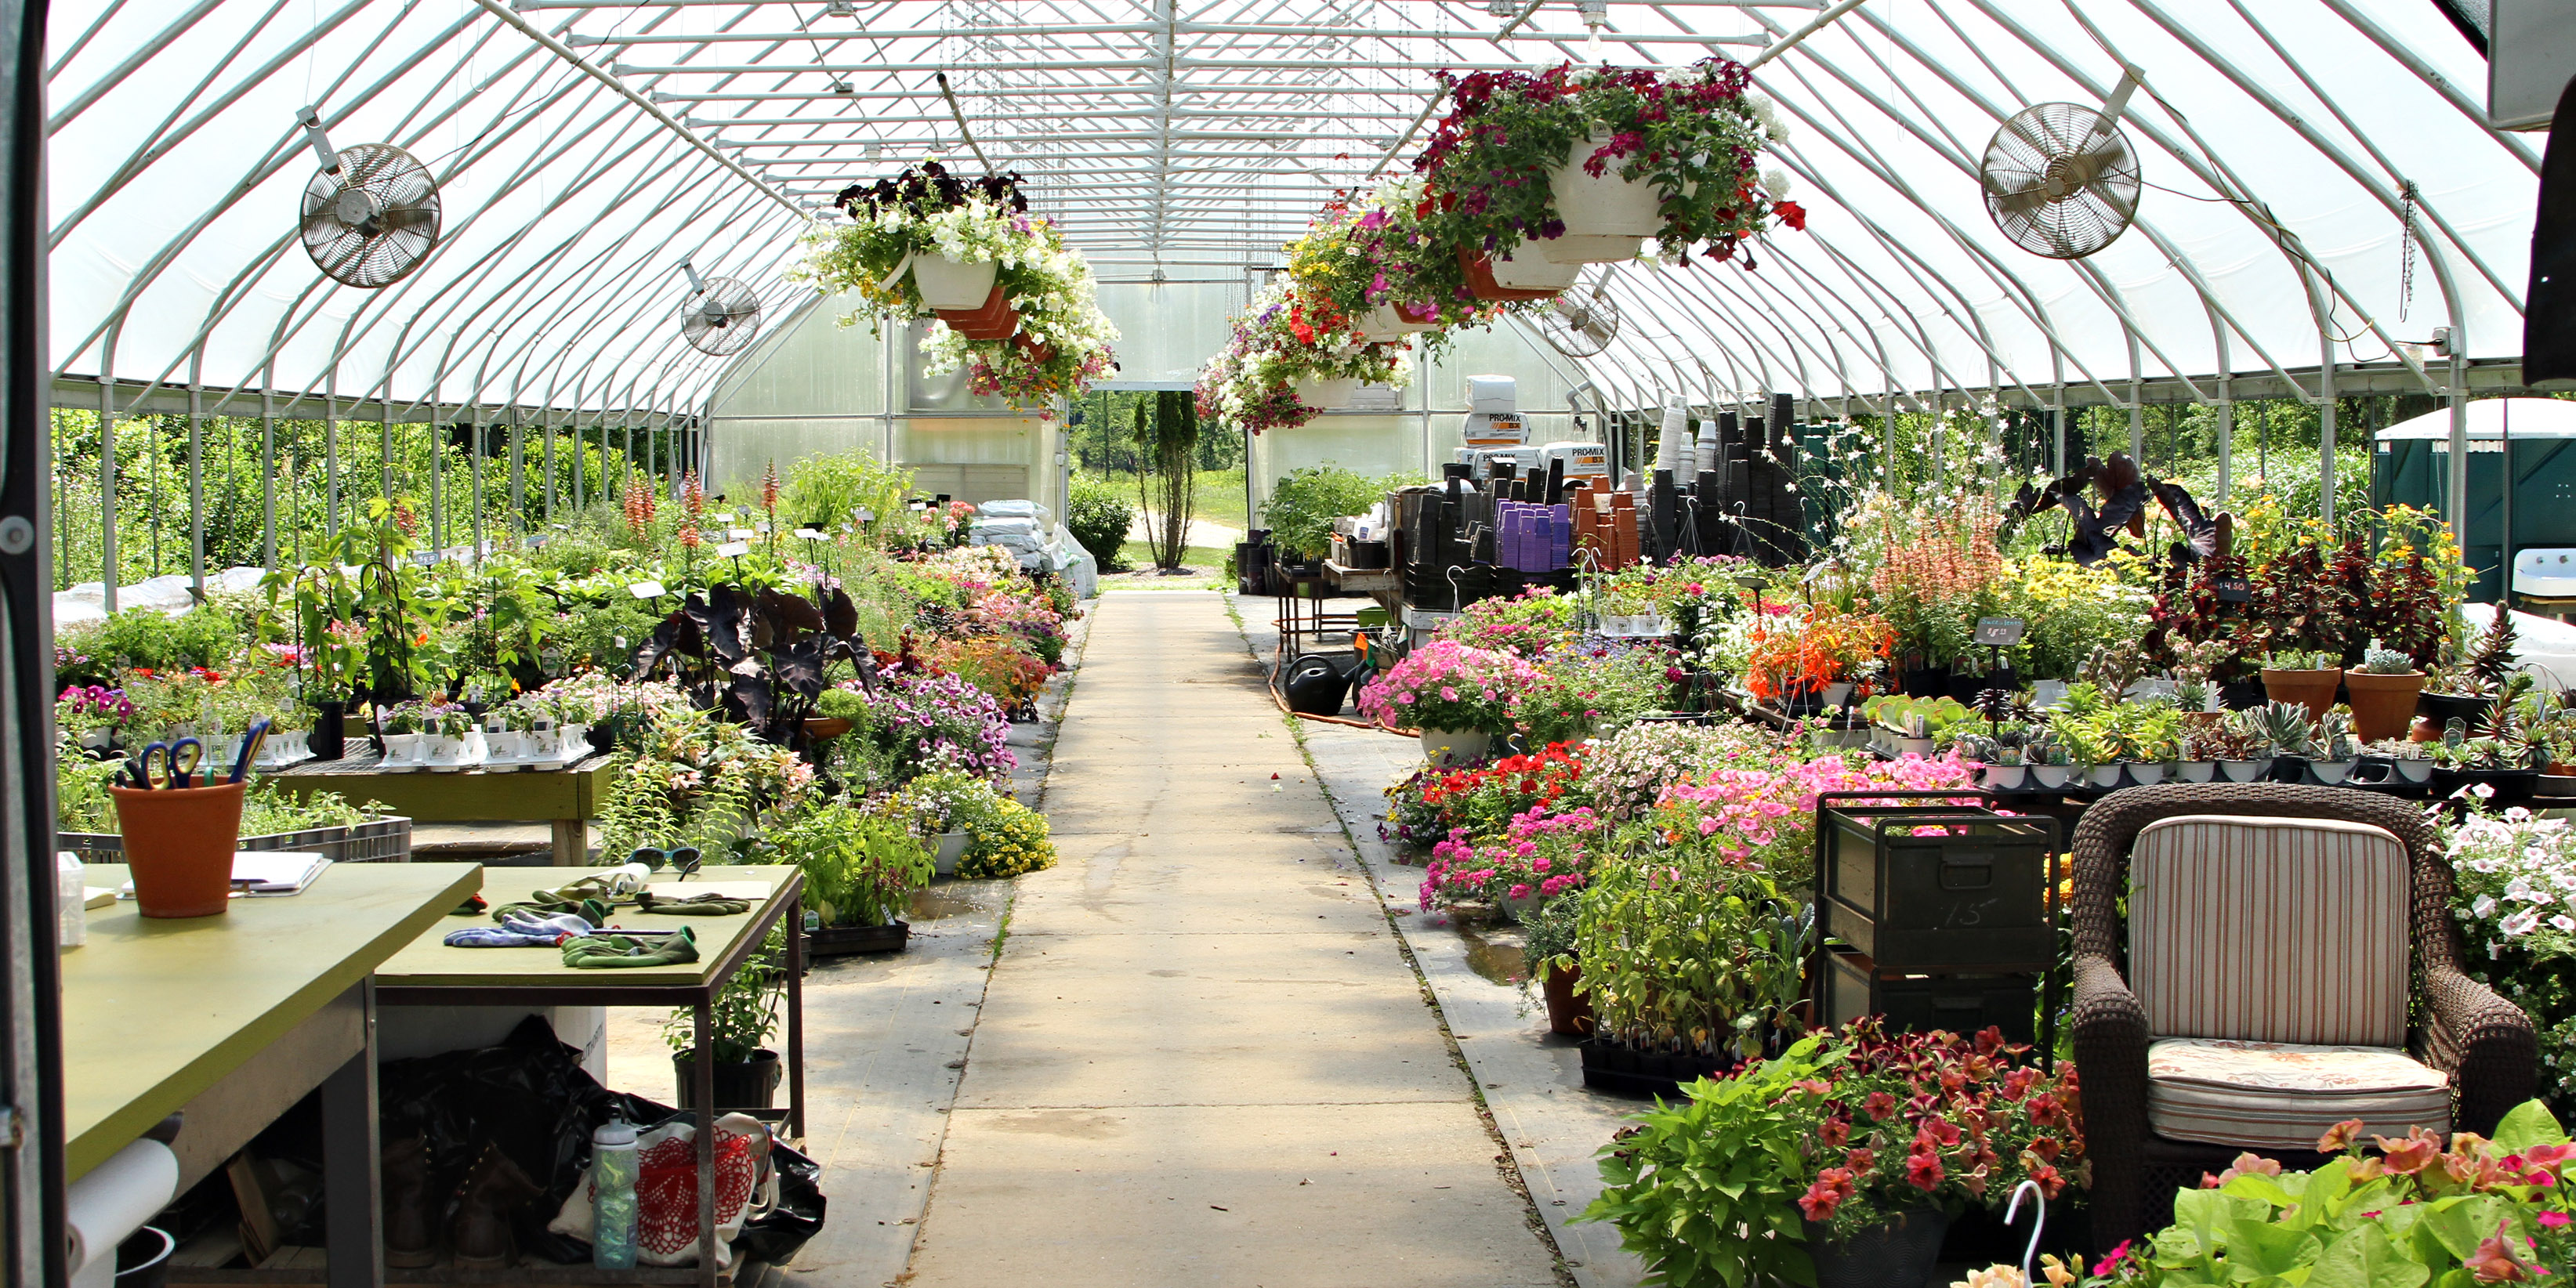 4 Wisconsin Greenhouses to Visit This Spring